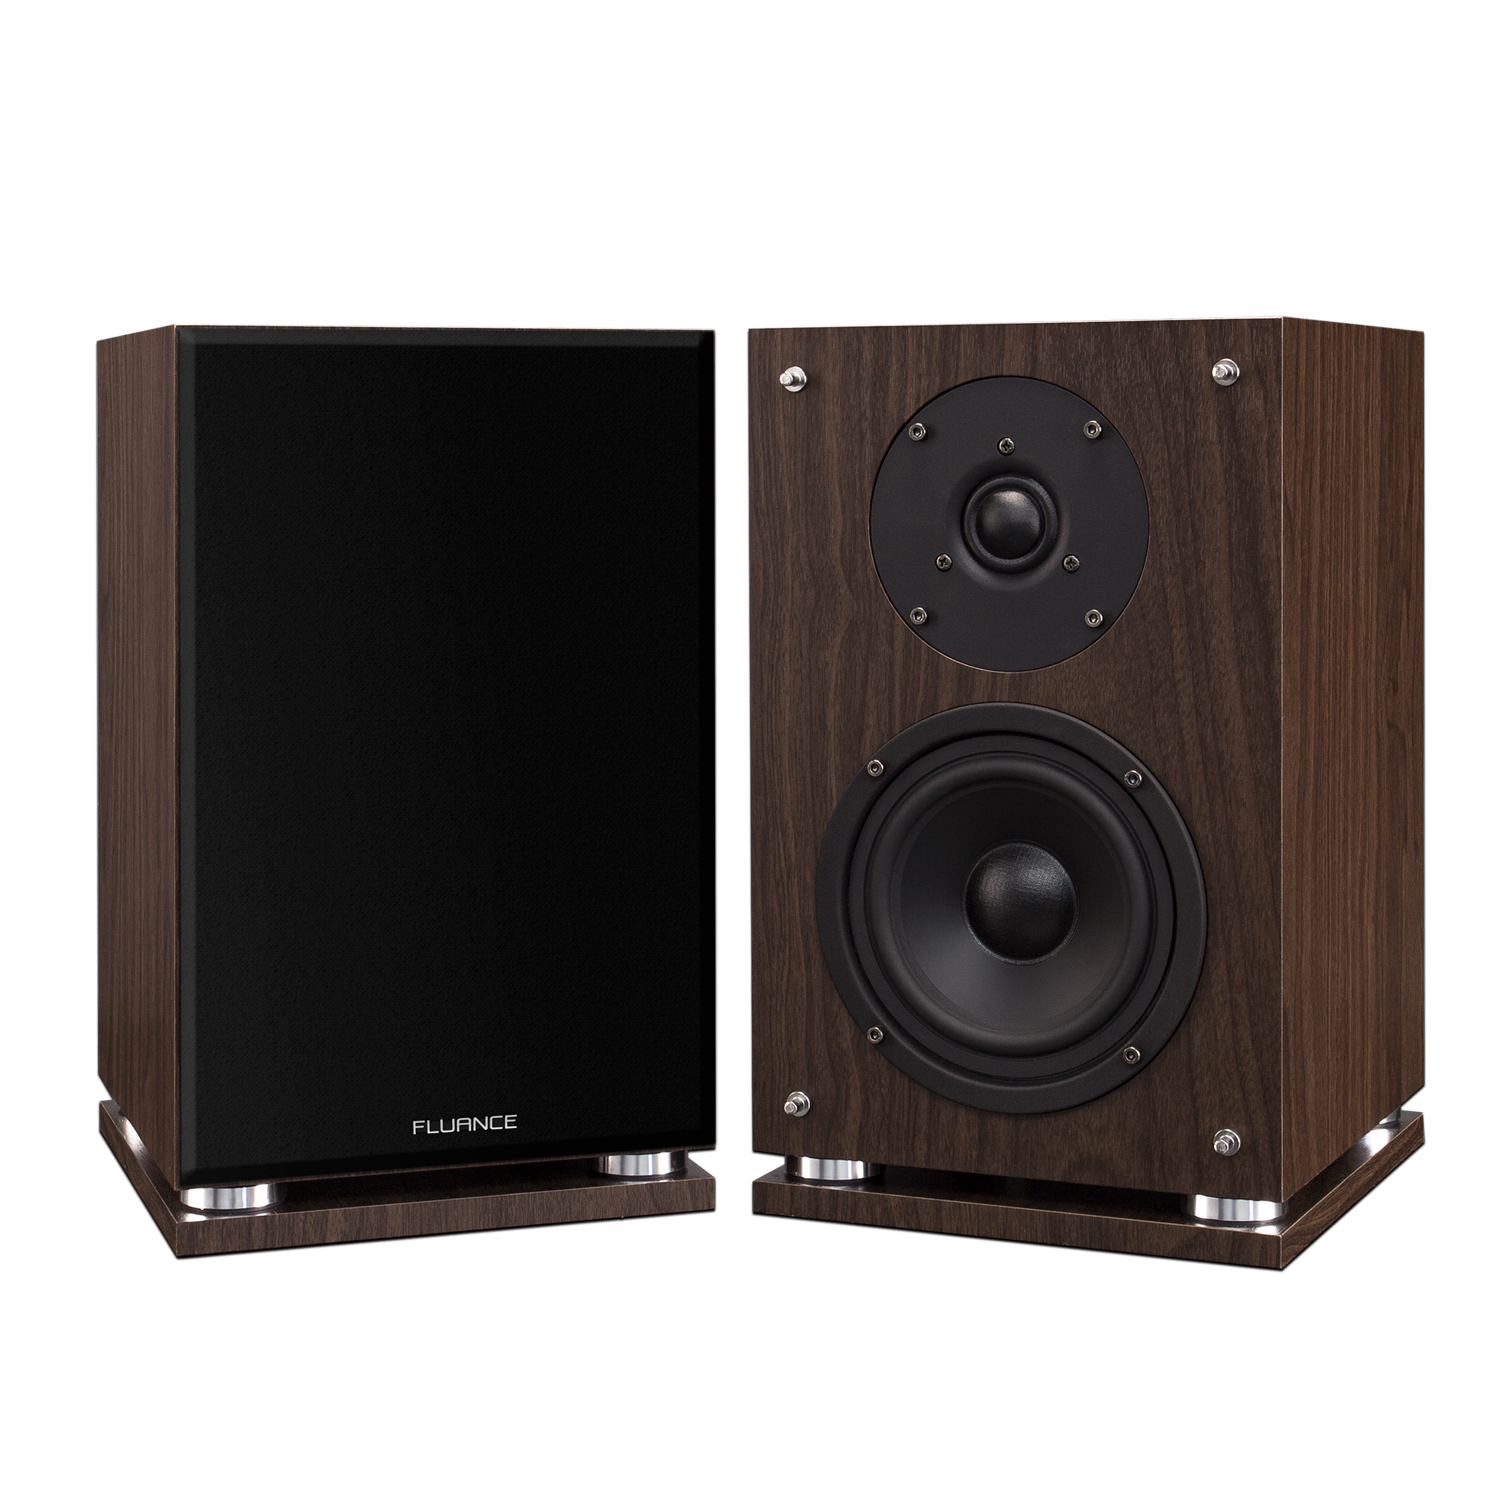 SX6 High Definition Two-way Bookshelf Loudspeakers - Natural Walnut (Fluance - Passive Speakers)